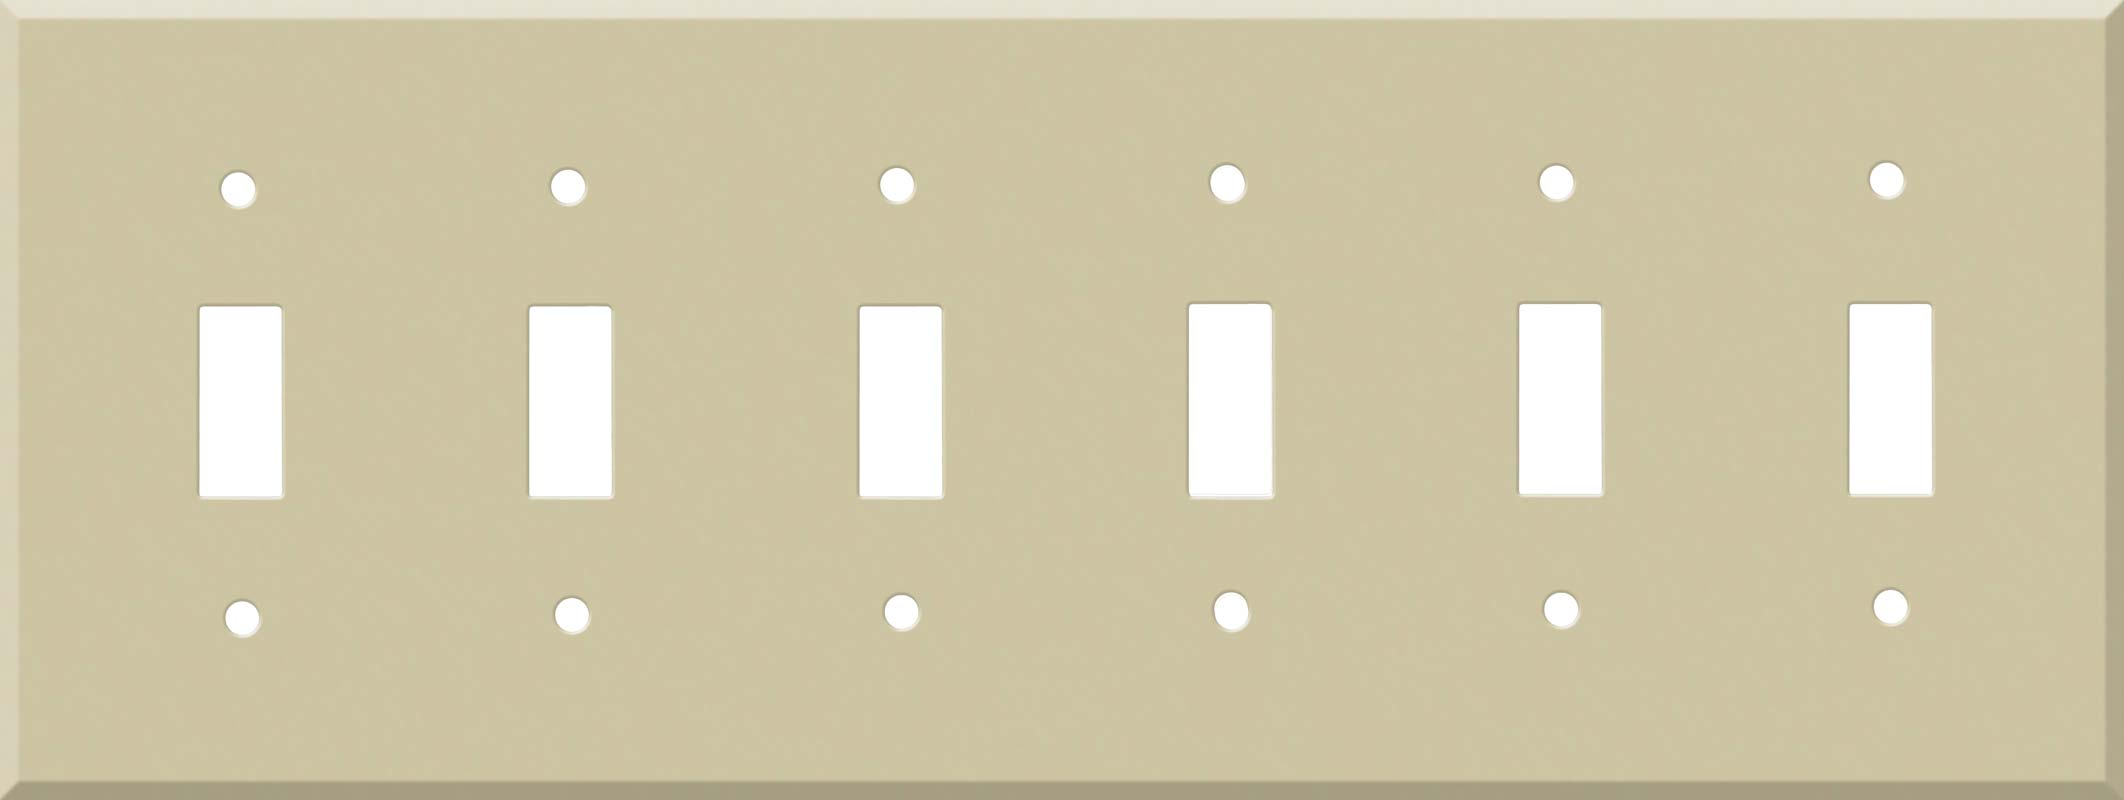 Corian Sand 6 Toggle Wall Plate Covers